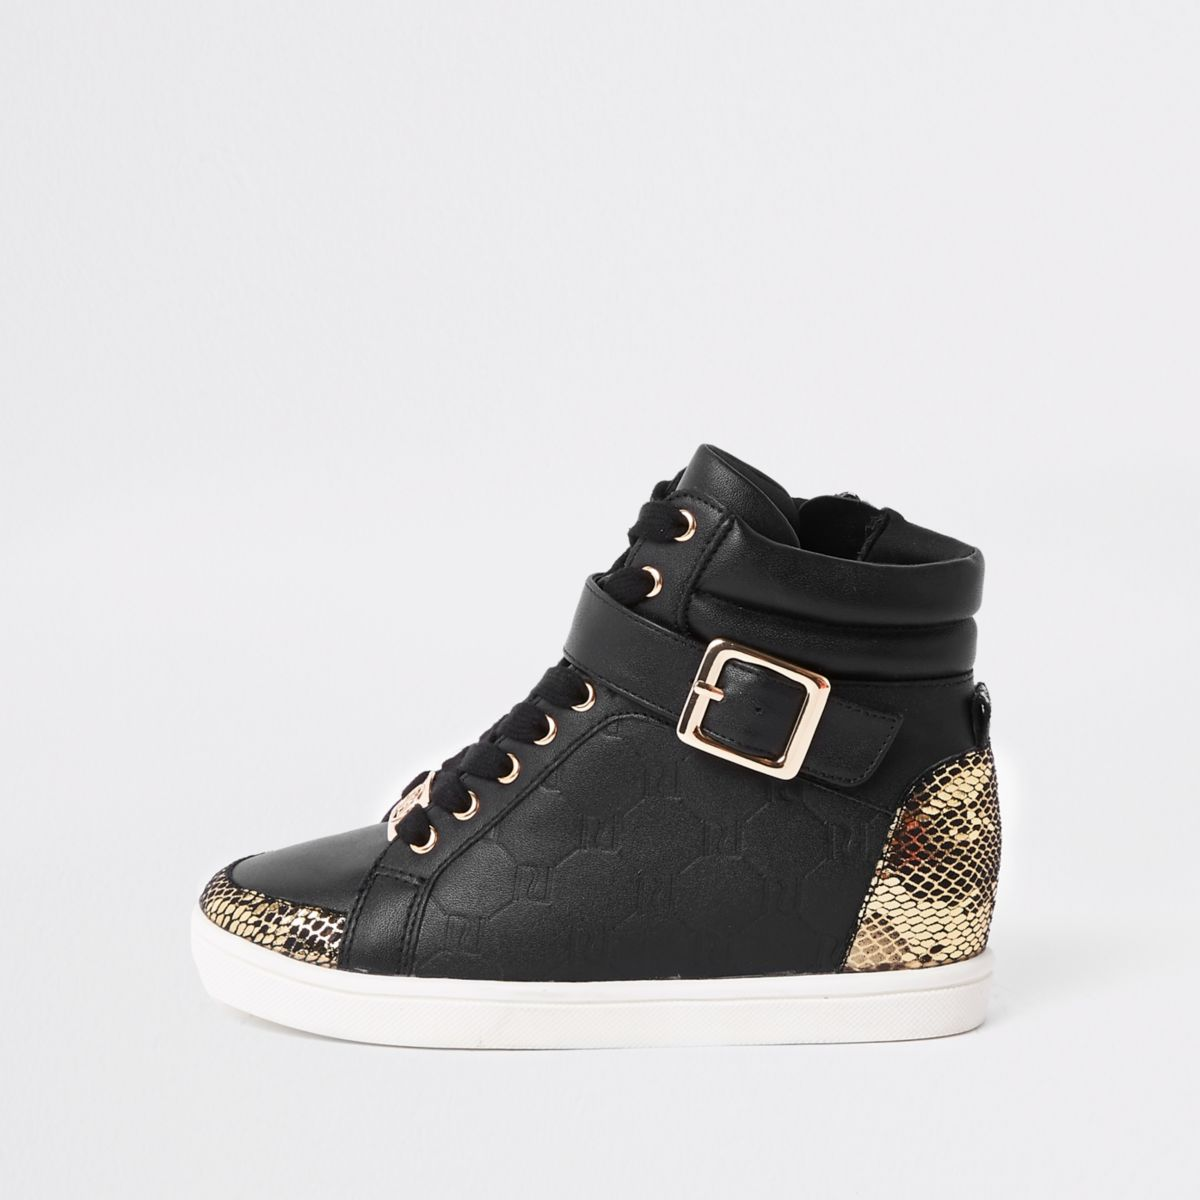 Girls black RI monogram high top sneakers